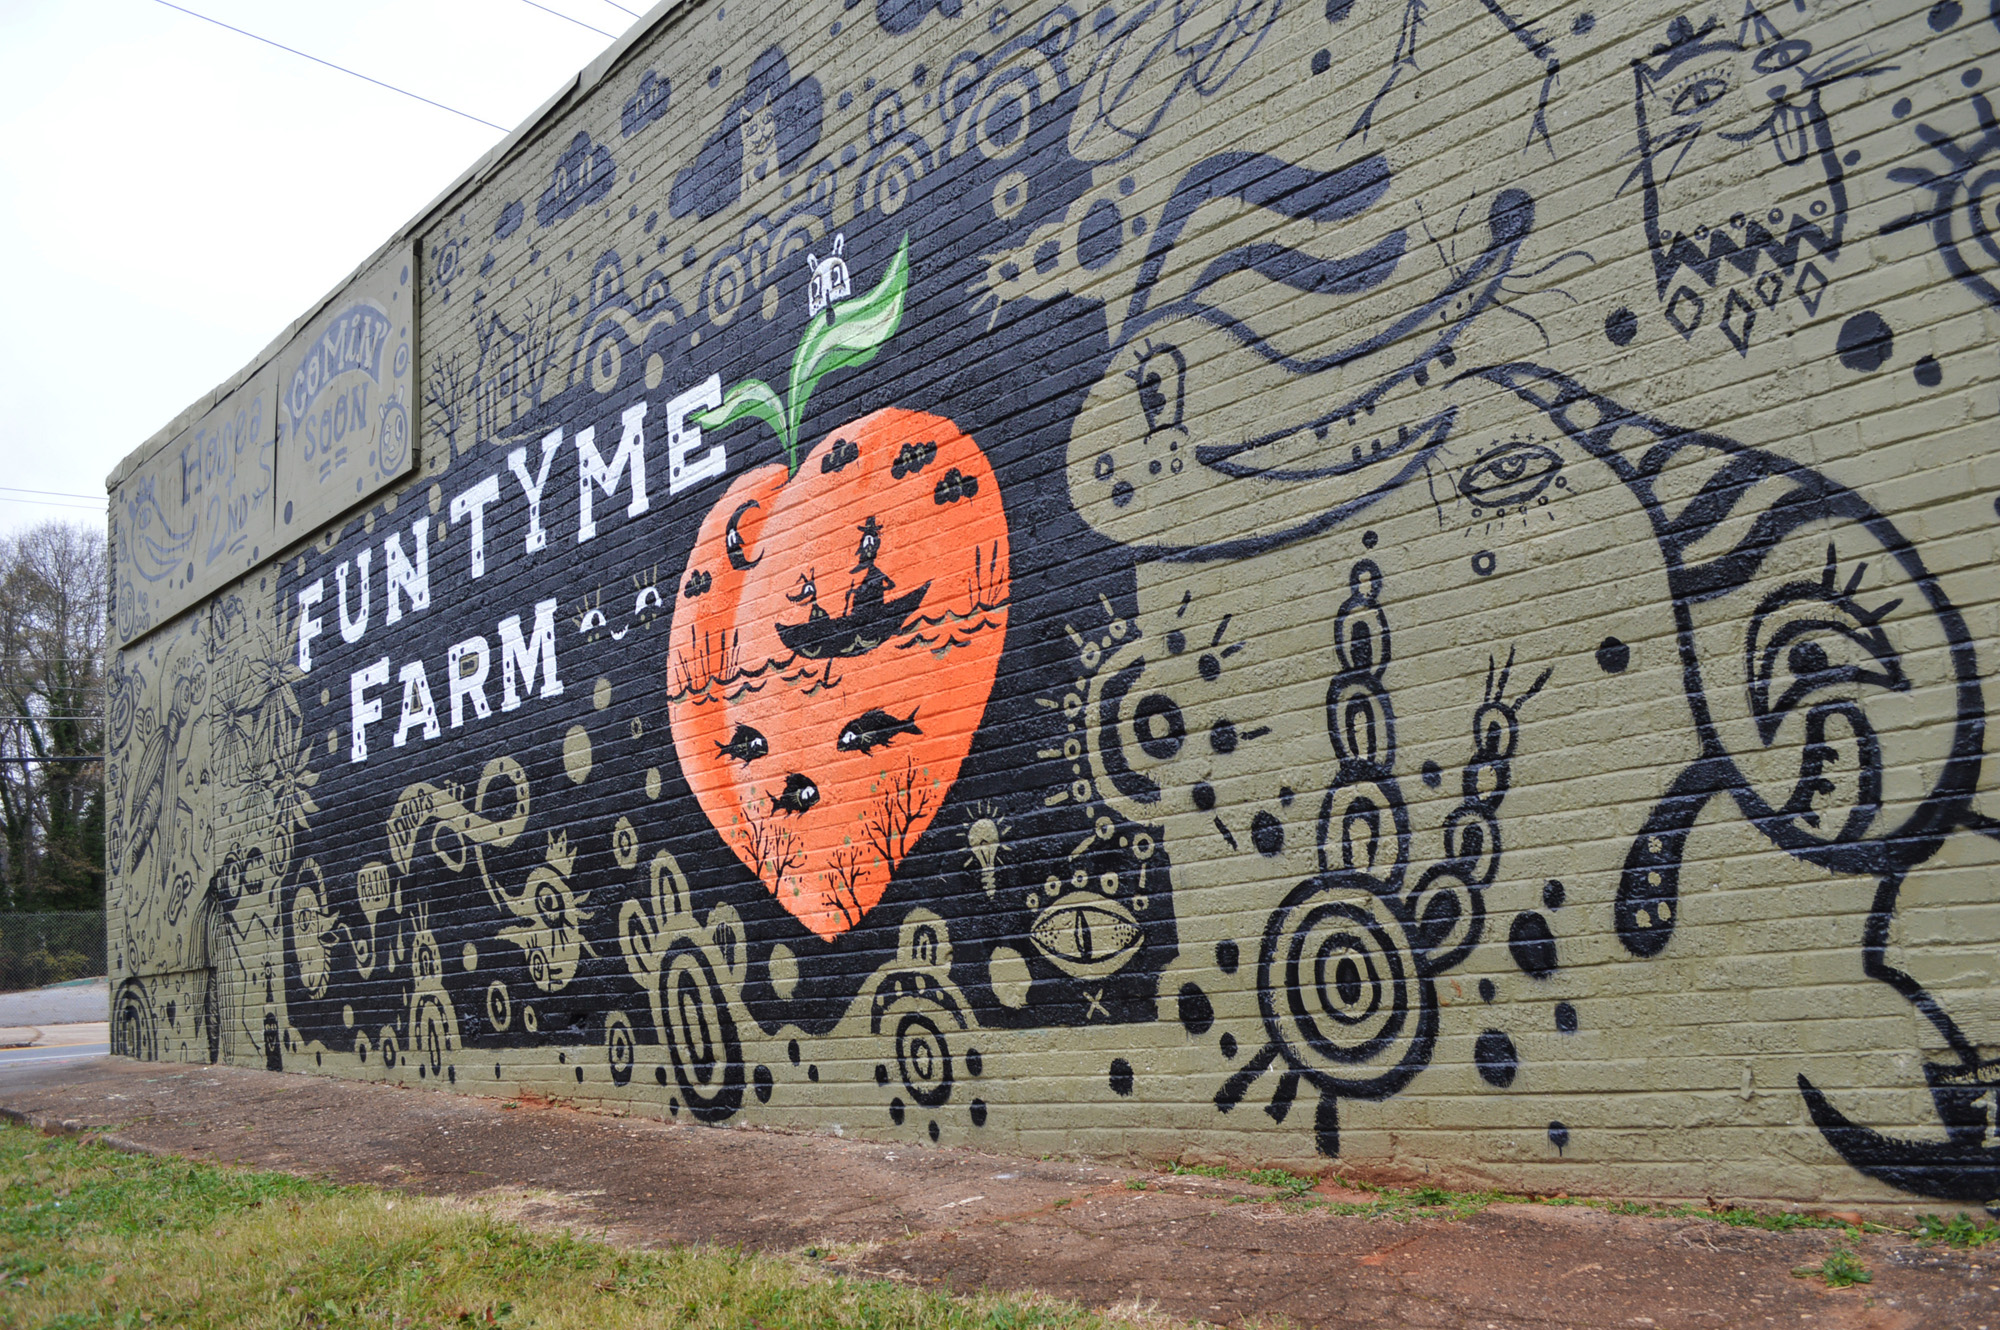 fun tyme farm - blackcattips and trustzabo mural - 32